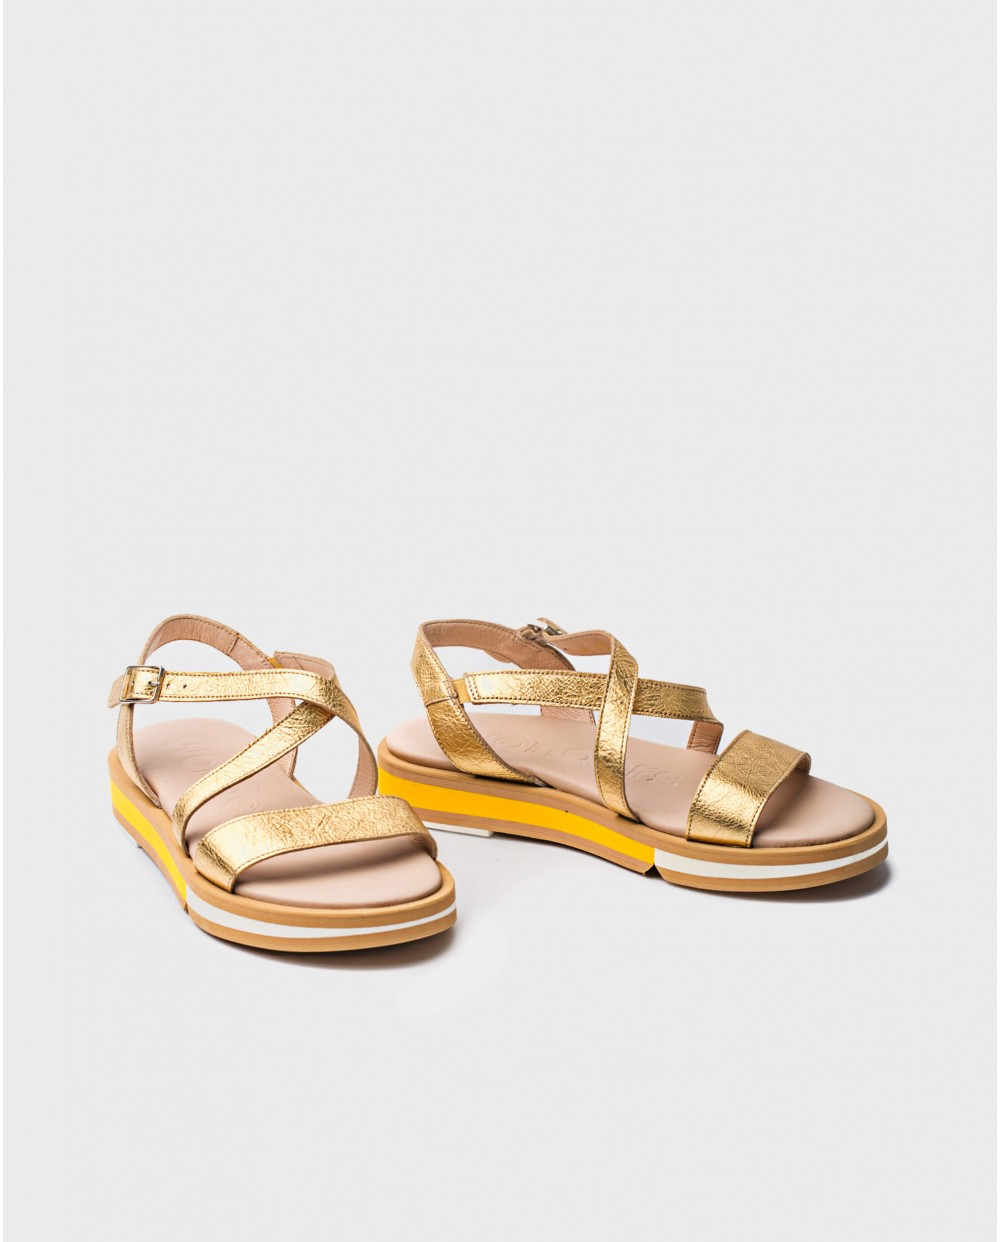 Wonders-Outlet-Sandal with metallic strap